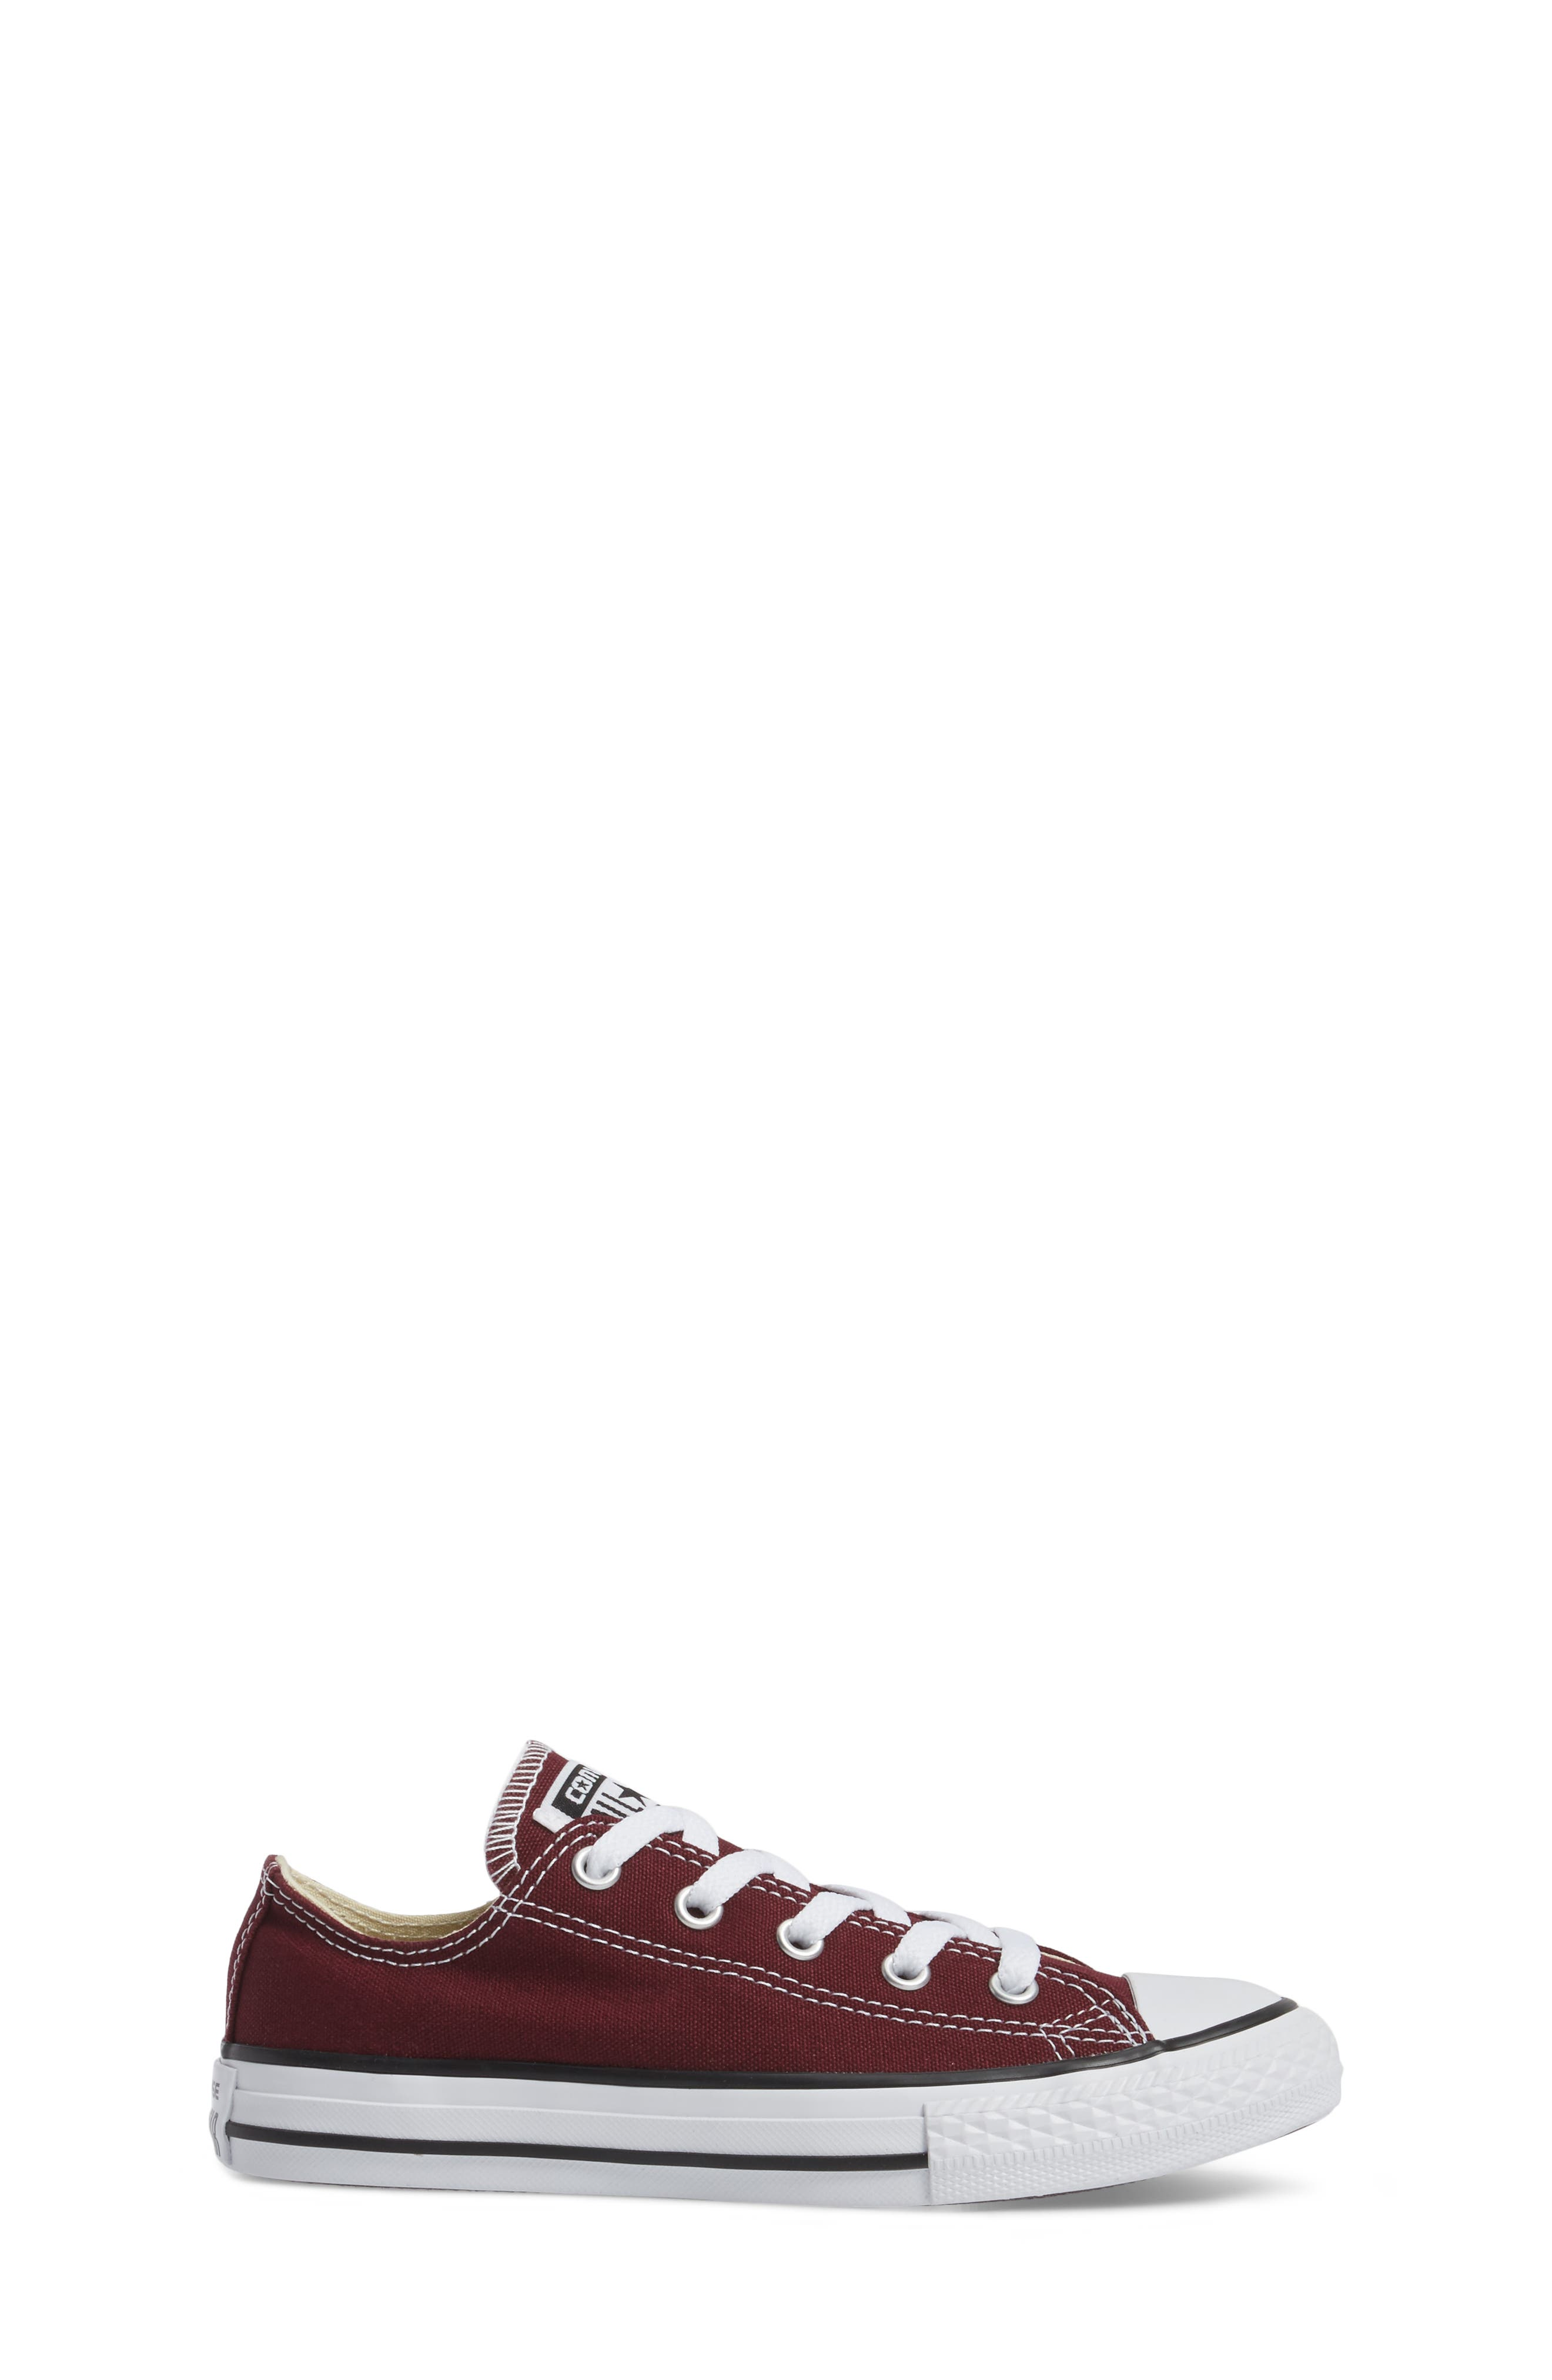 Alternate Image 3  - Converse Chuck Taylor® All Star® 'Ox' Low Top Sneaker (Baby, Walker, Toddler & Little Kid)